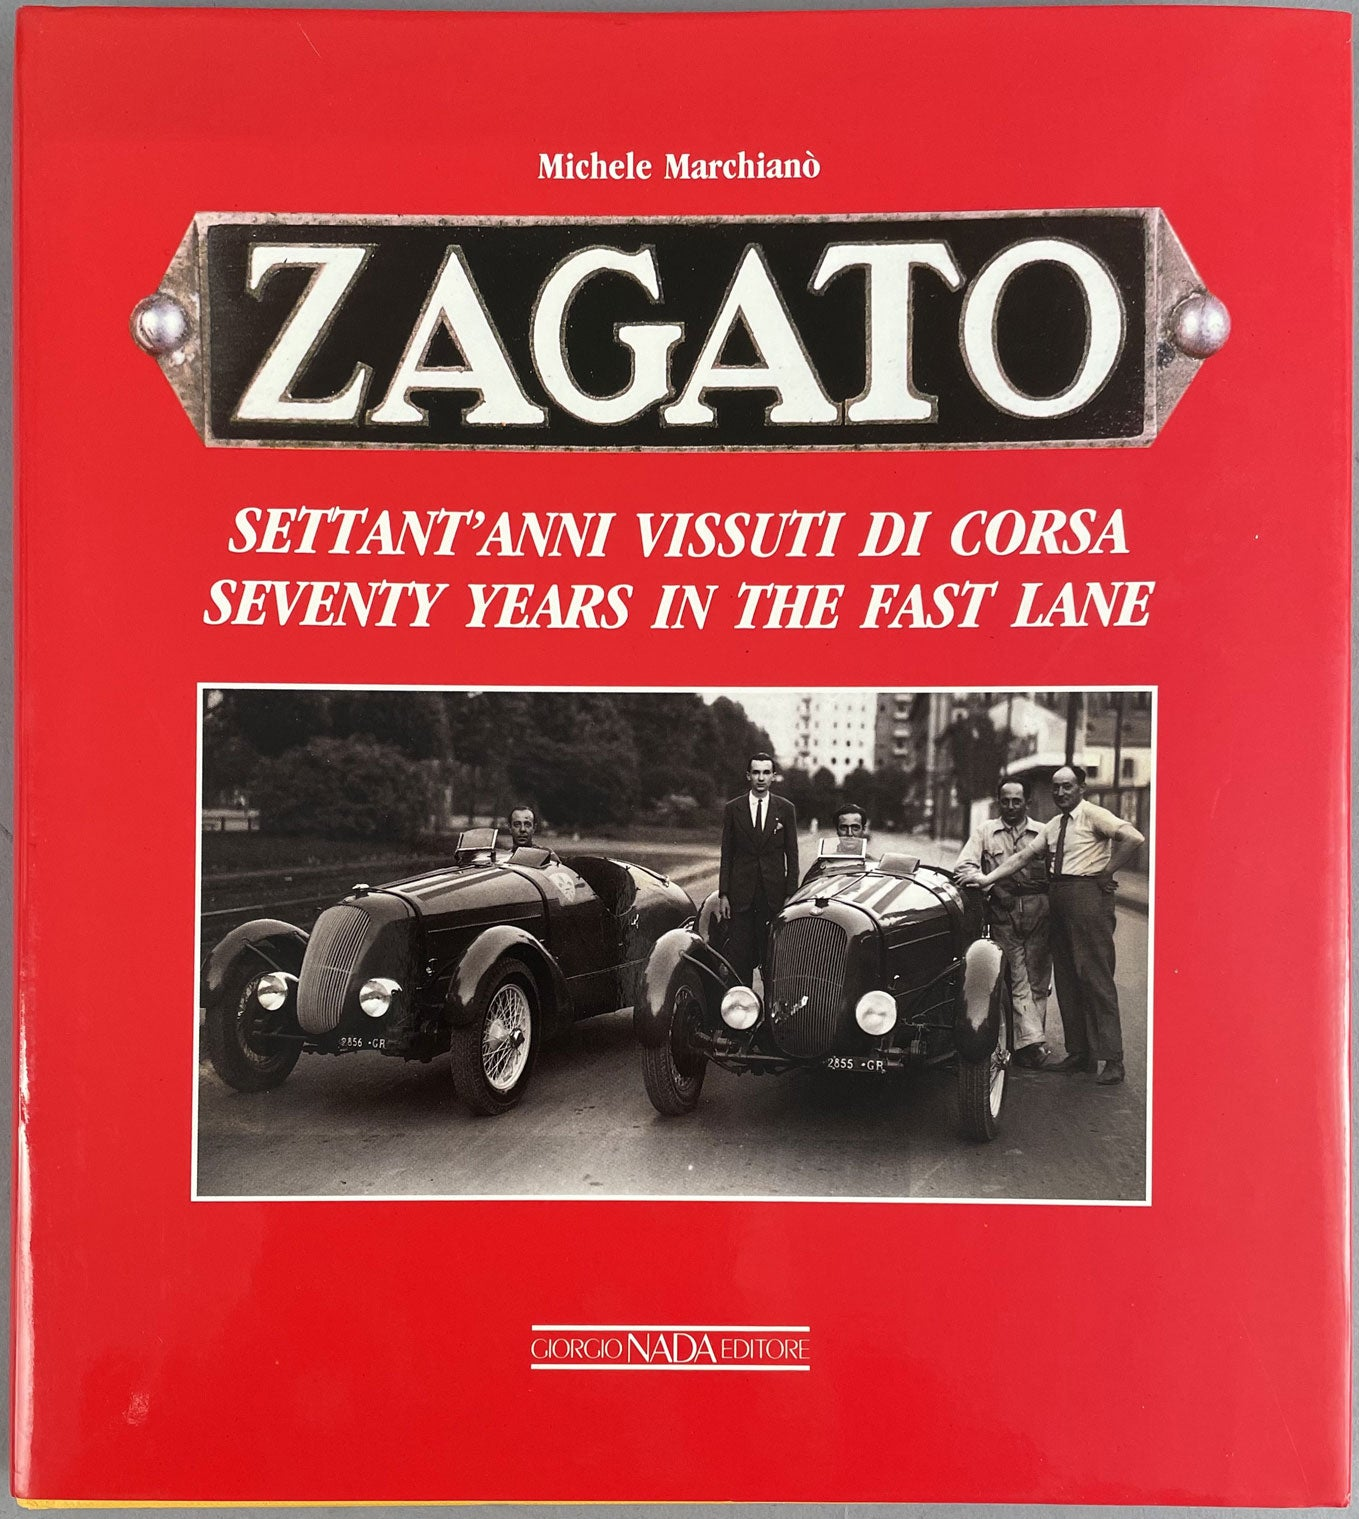 Zagato - 70 years in the fast lane book by Michele Marchiano, 1989, 1st edition